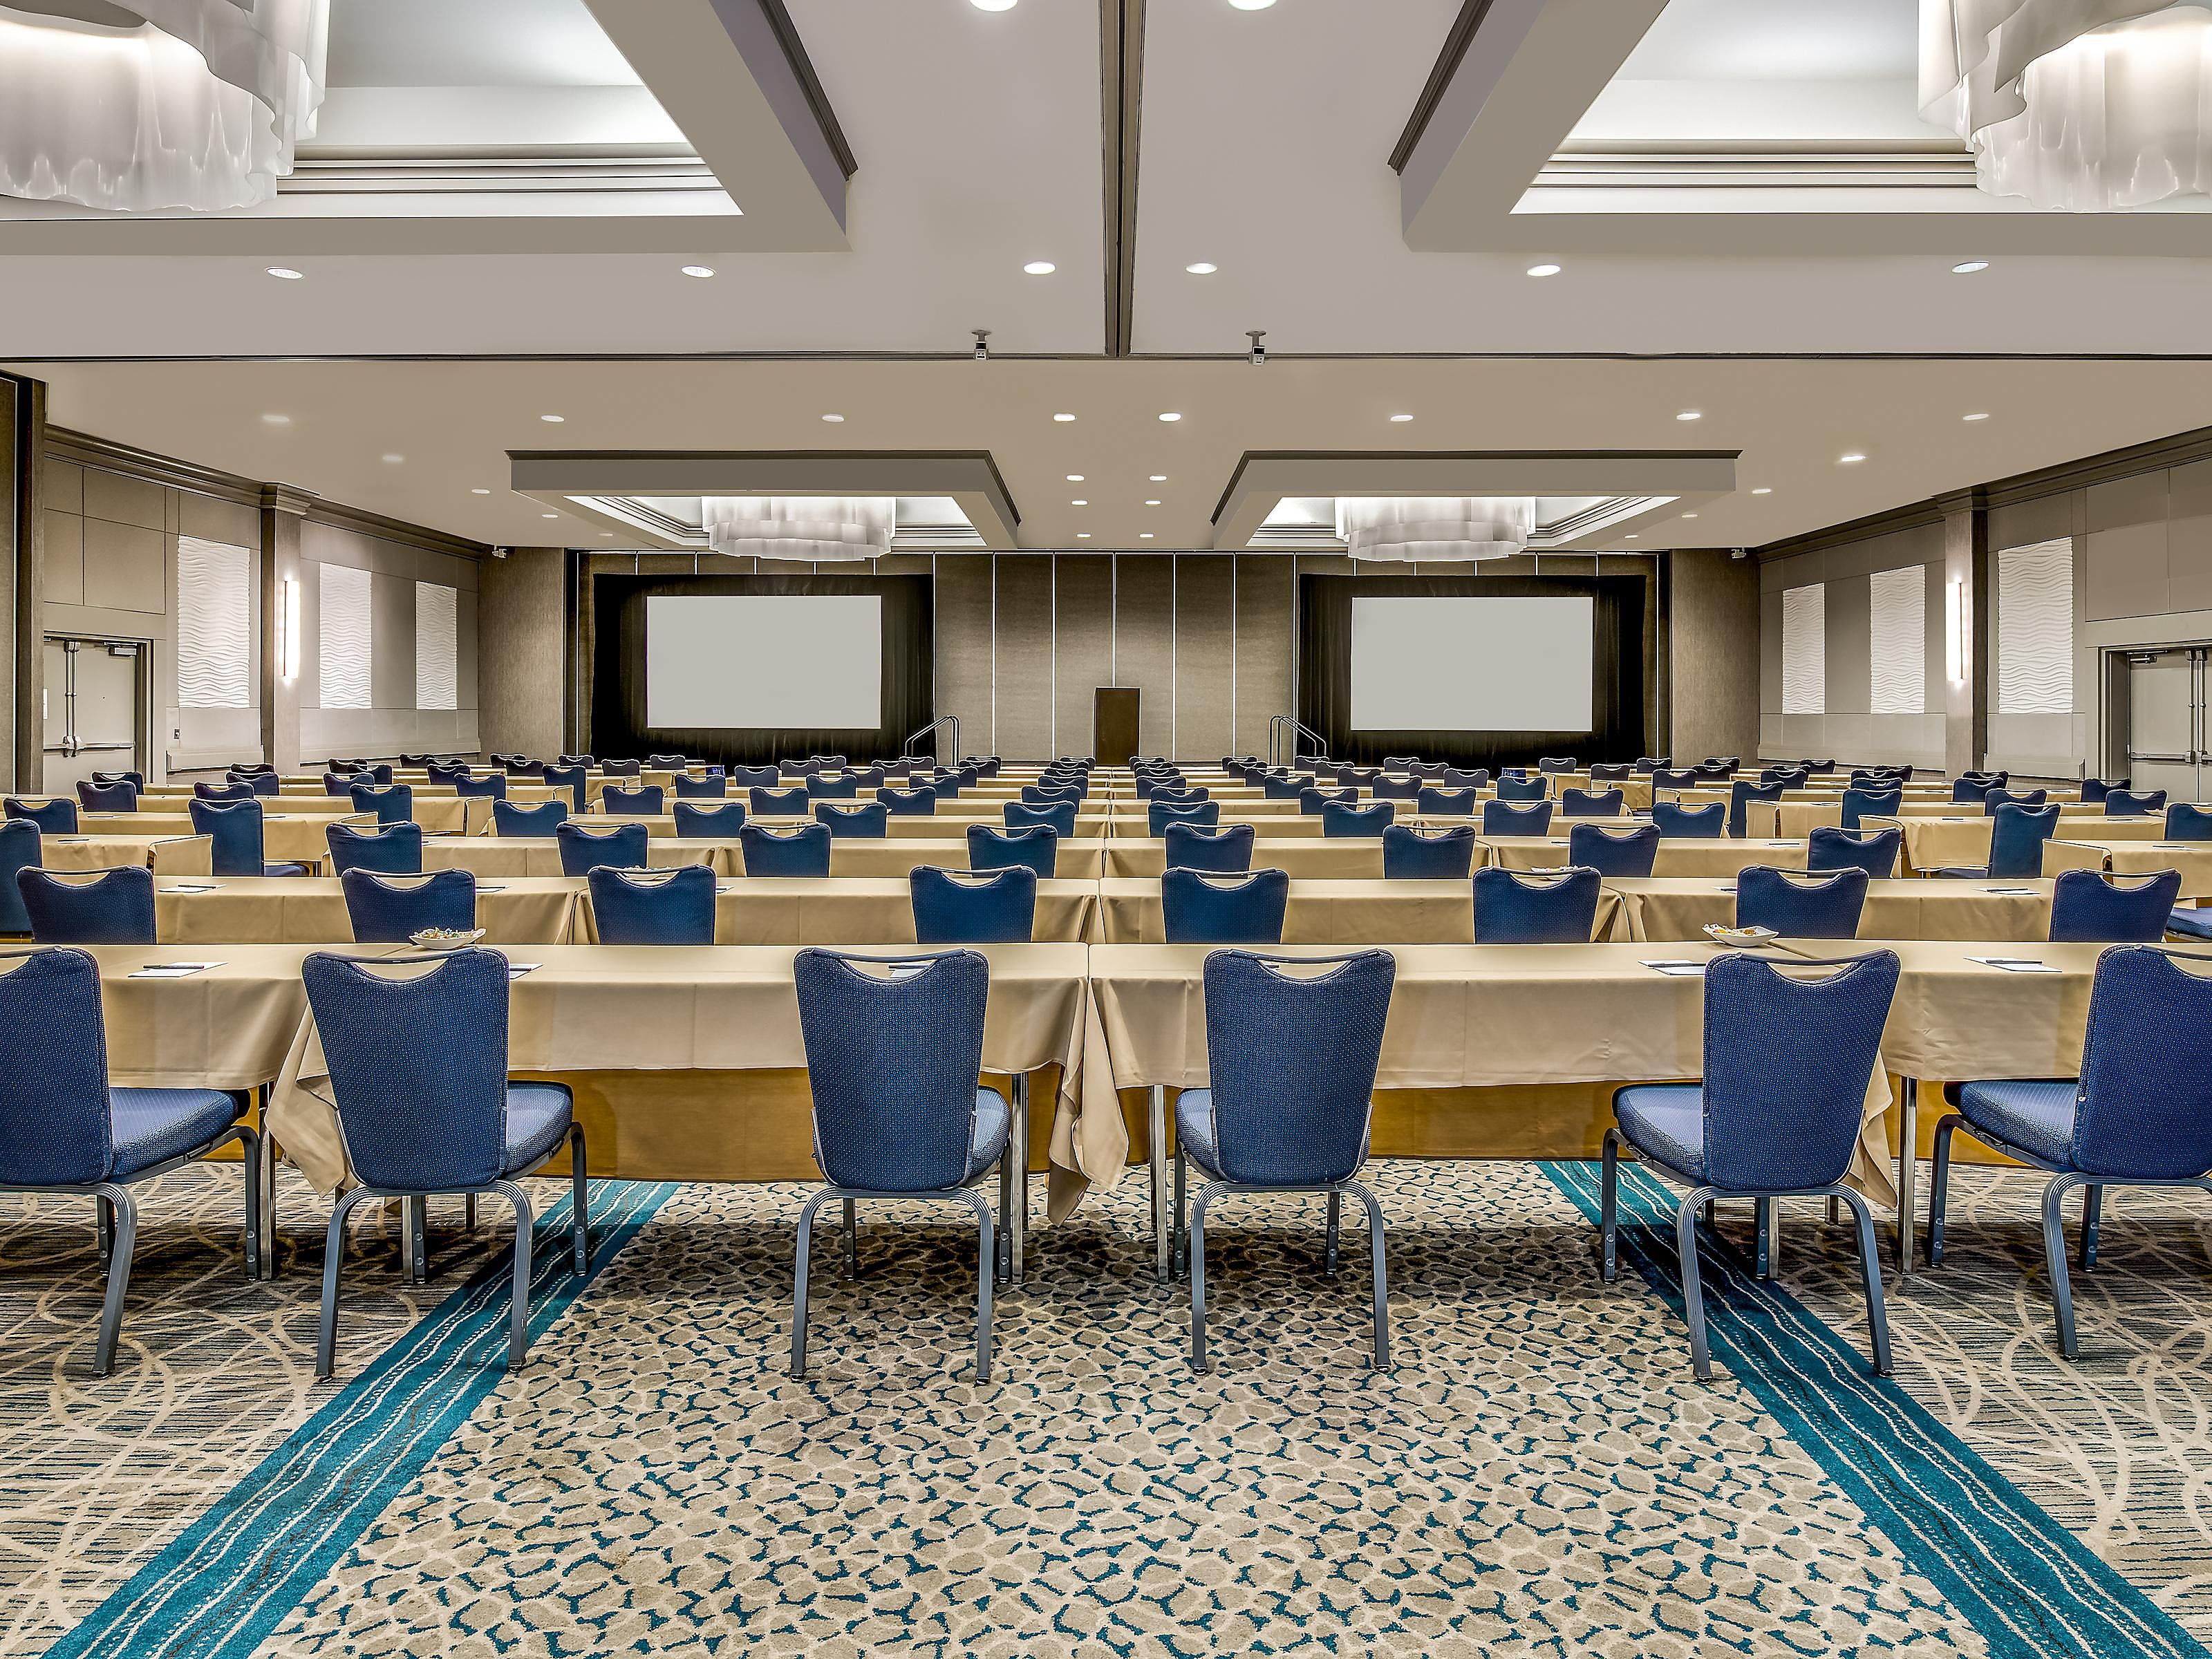 Crowne Plaza Palo Alto - Hotel Meeting Rooms for Rent